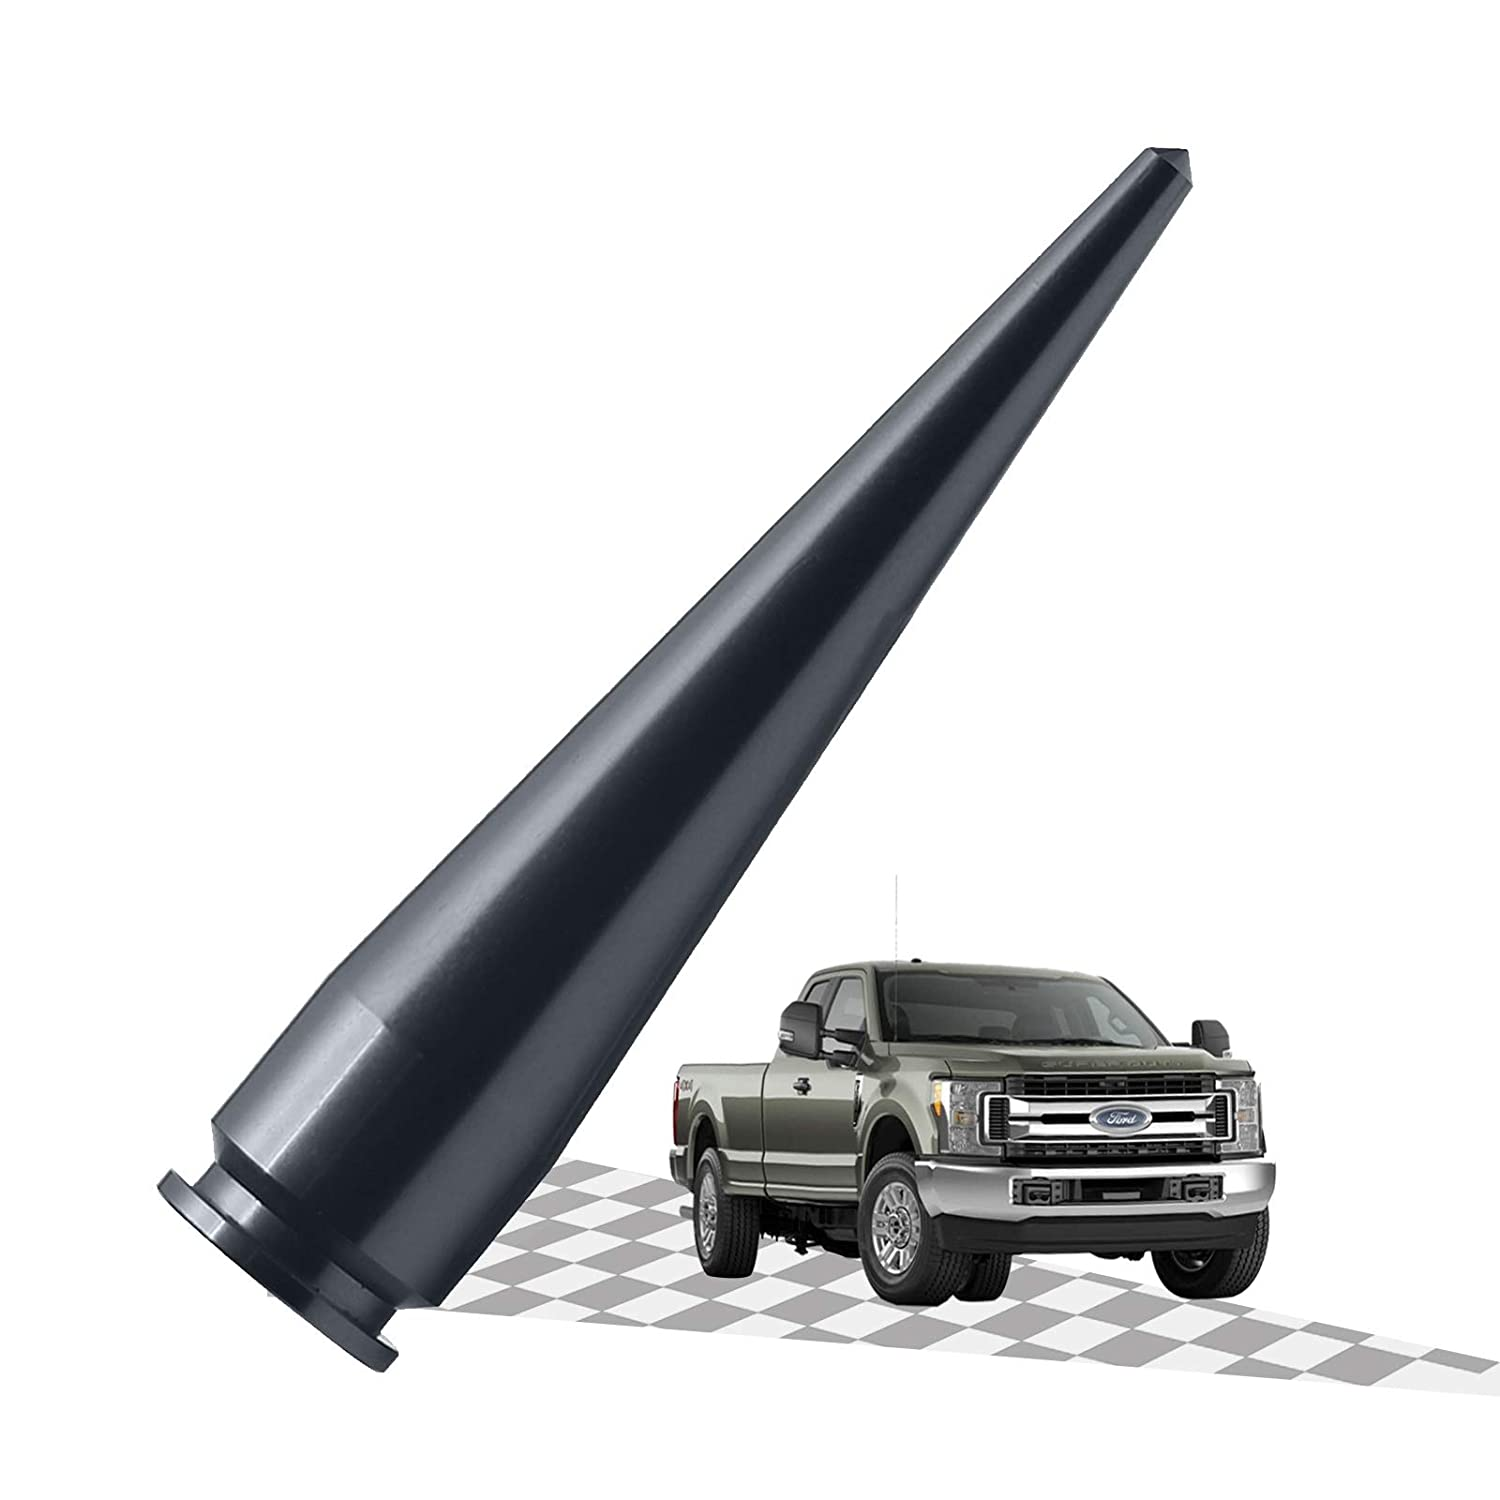 3 Inches Elitezip Antenna Compatible with Ford F-250 2009-2018 Optimized AM//FM Reception with Tough Material Carbon/ Black